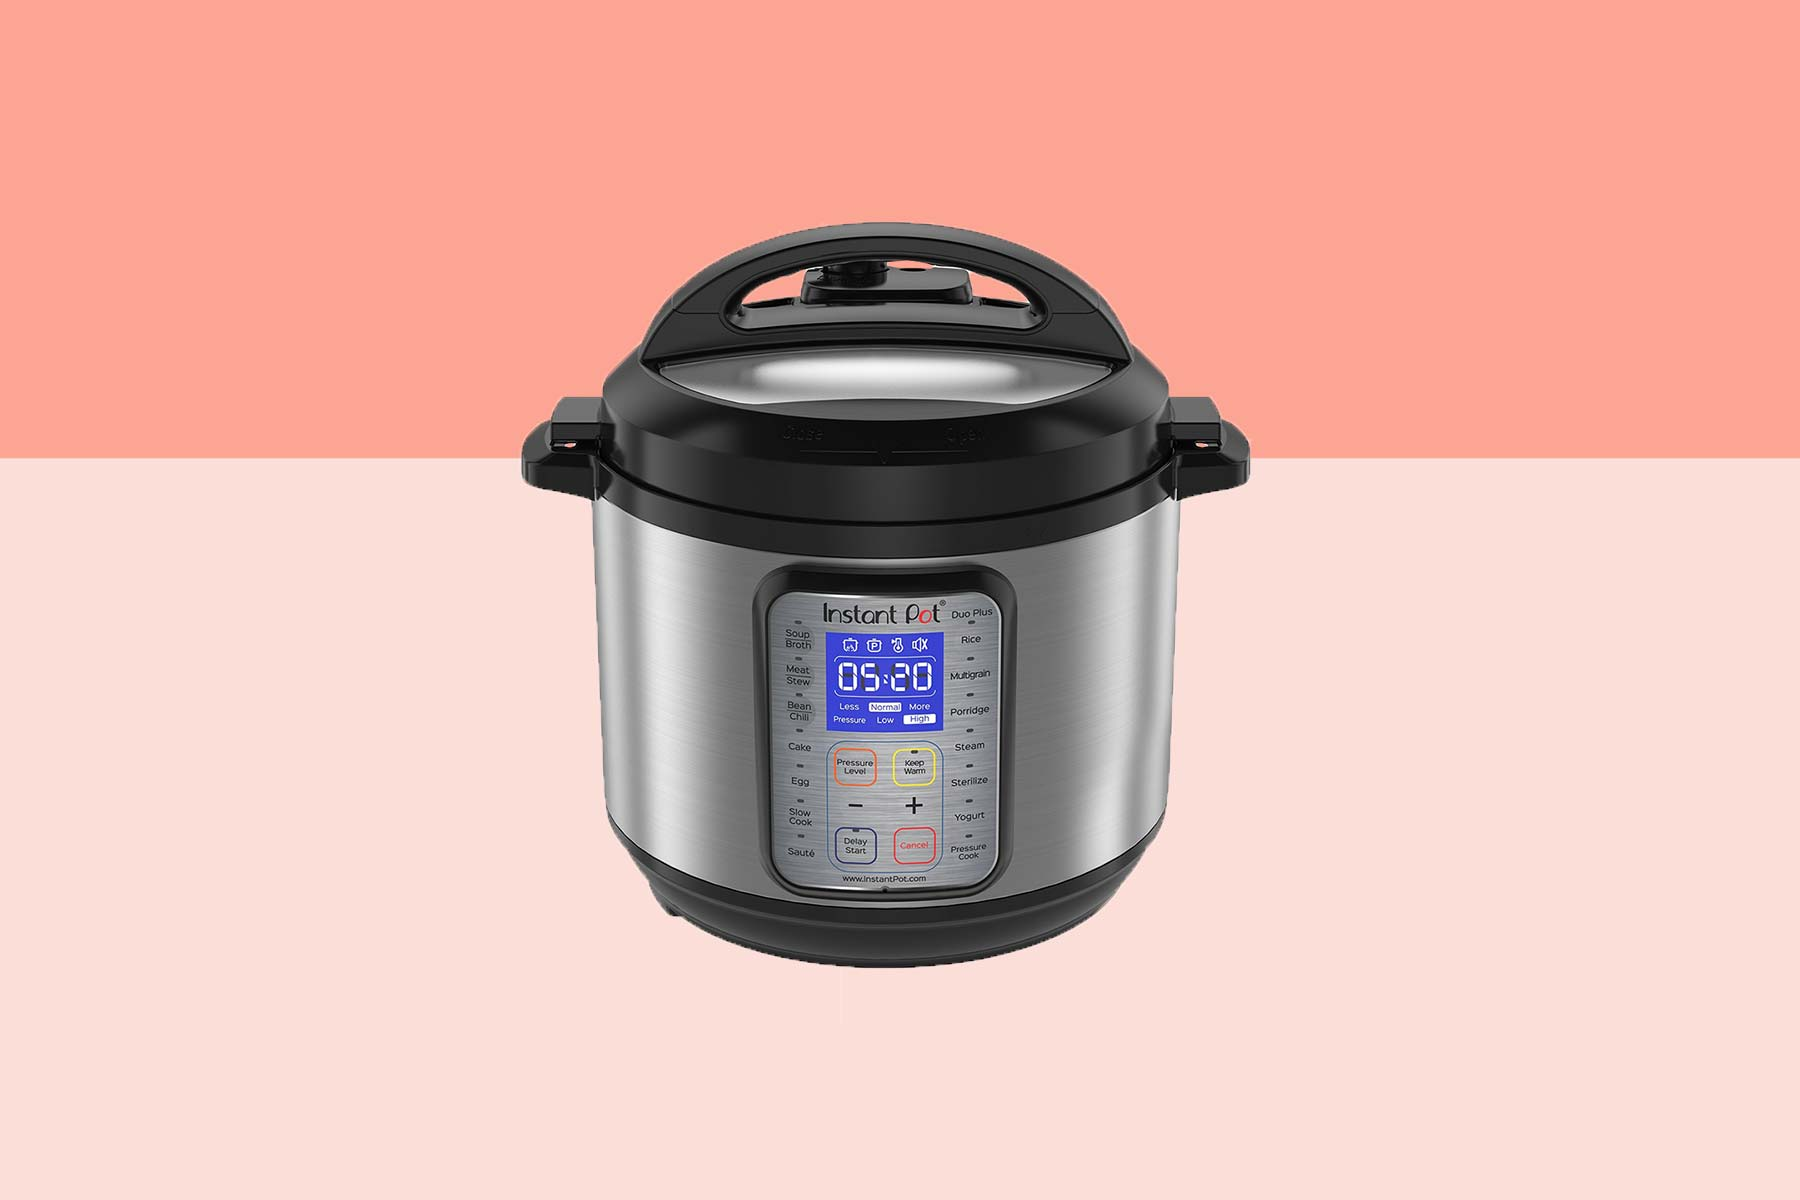 Here's How to Make Wine in Your Instant Pot—Yes, You Read That Correctly